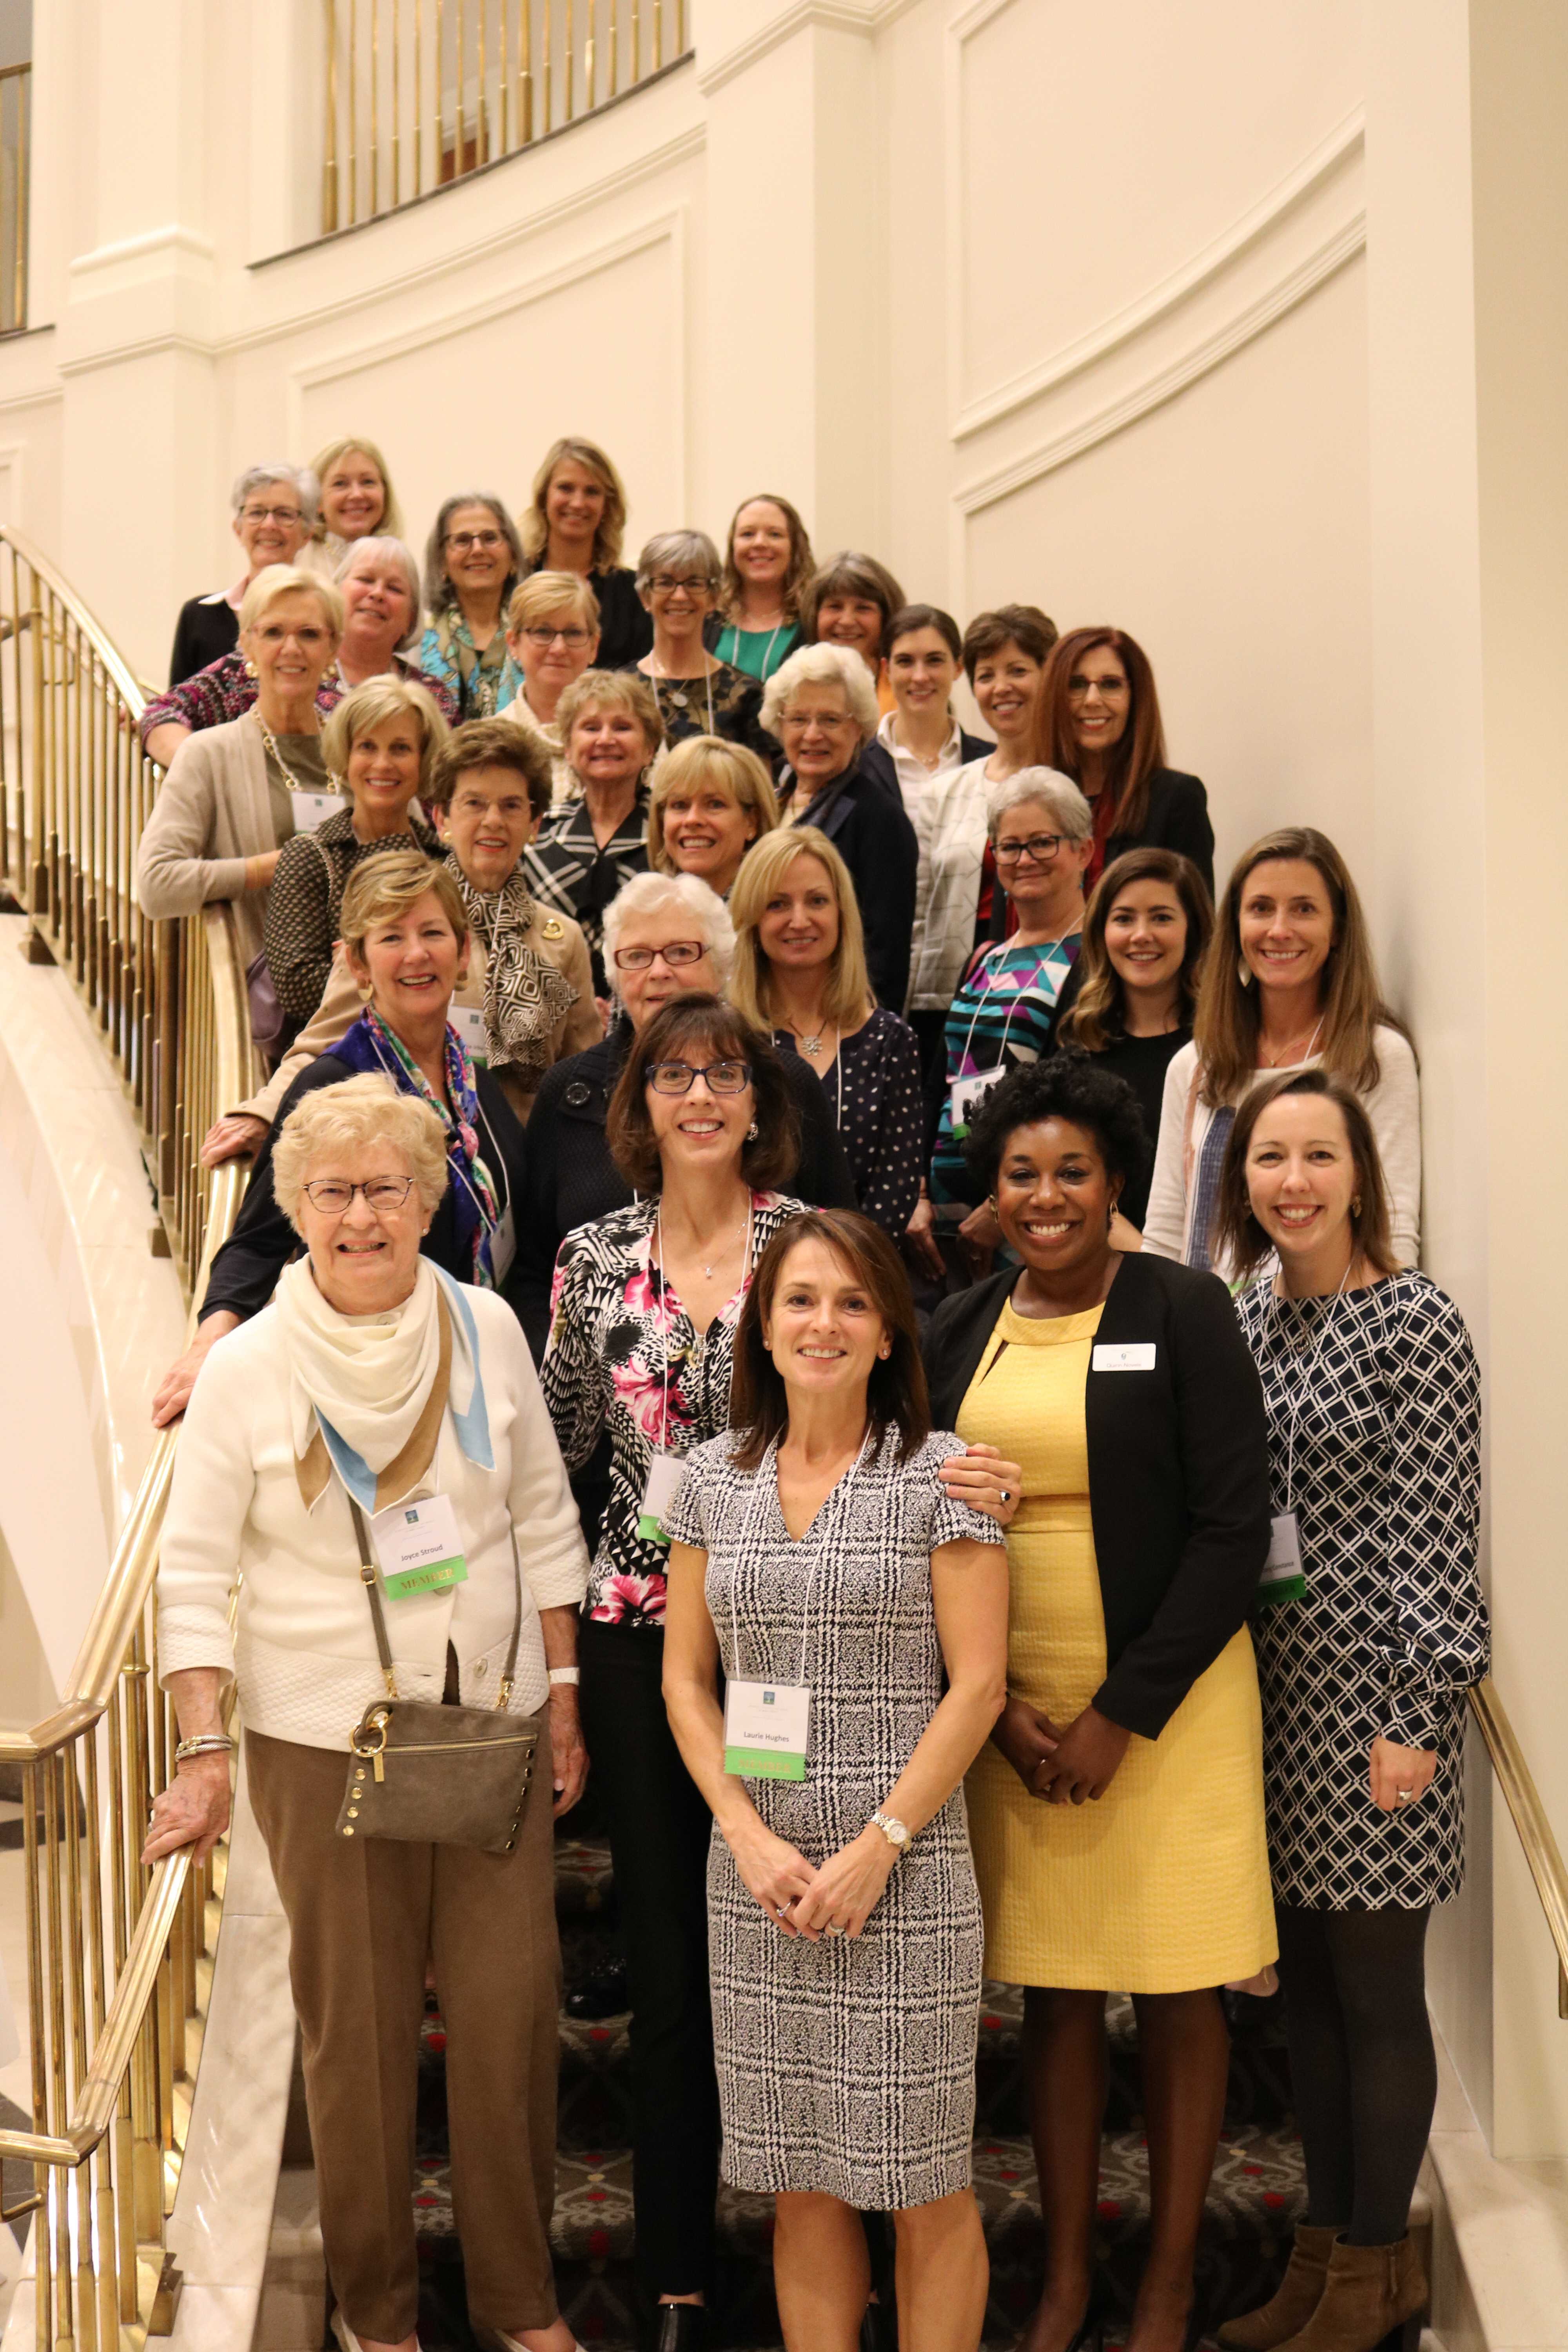 Members of the Women's Giving Network of Wake County gather for a photo at the 12th annual Impact Luncheon after celebrating $89,000 in local grant awards to nonprofit programs serving women and children.